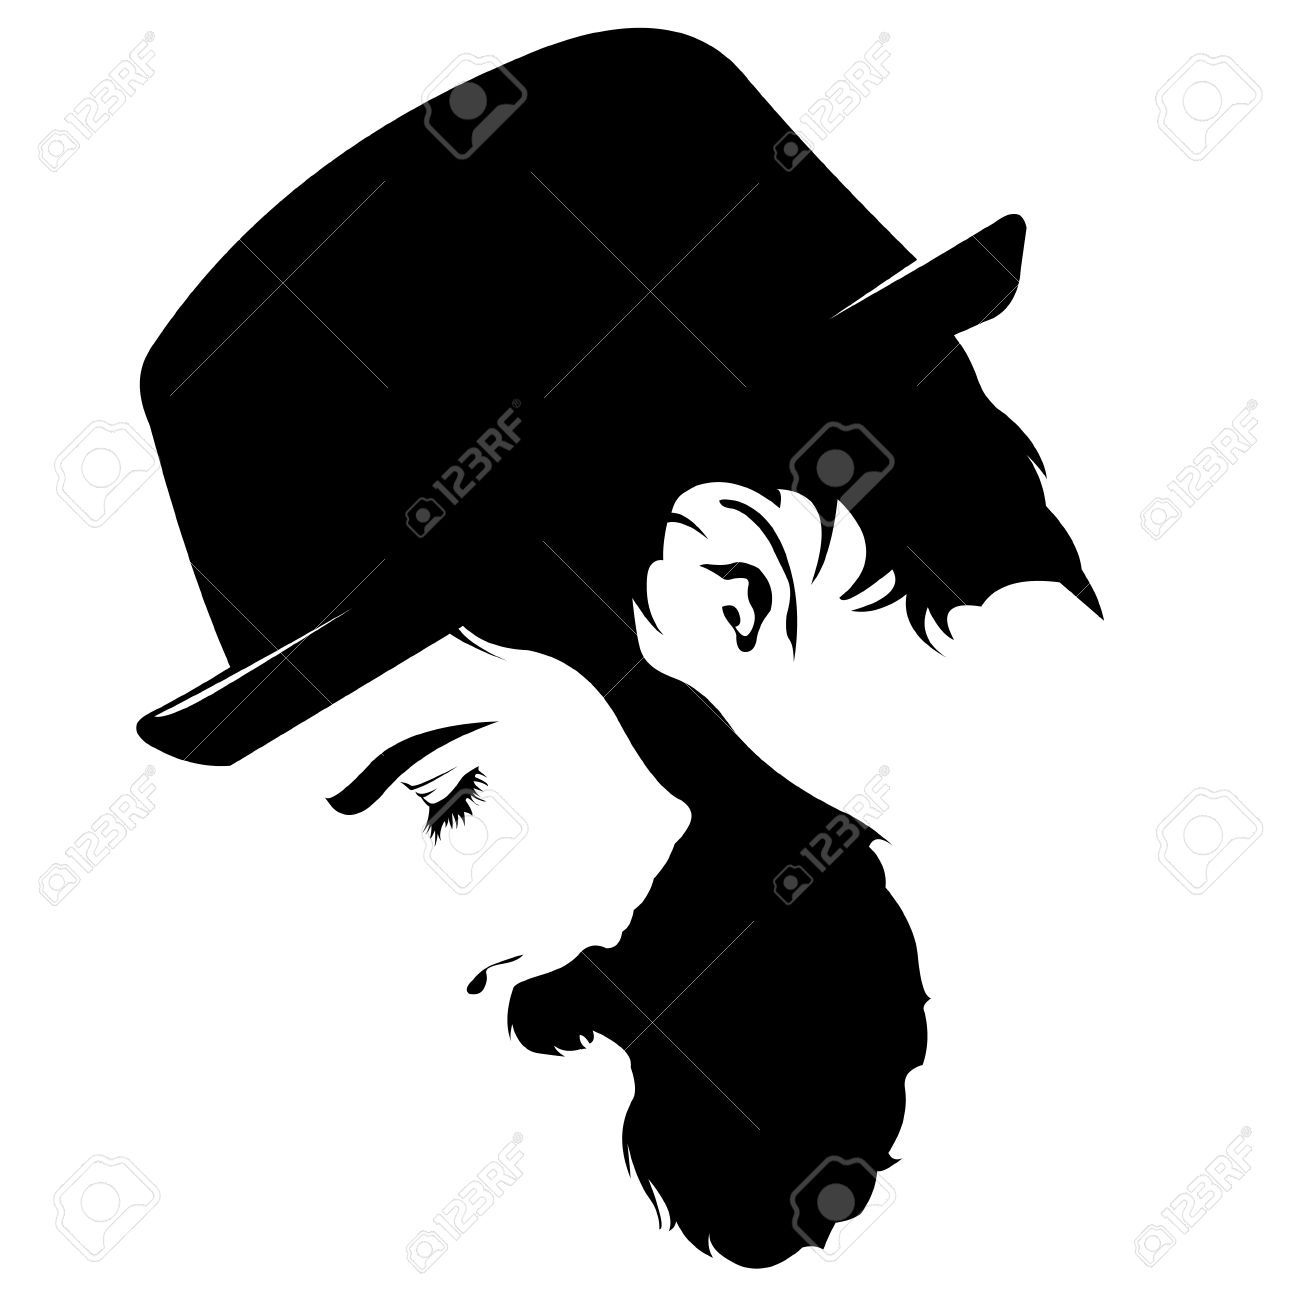 png library stock Stock vector in art. Beard clipart profile